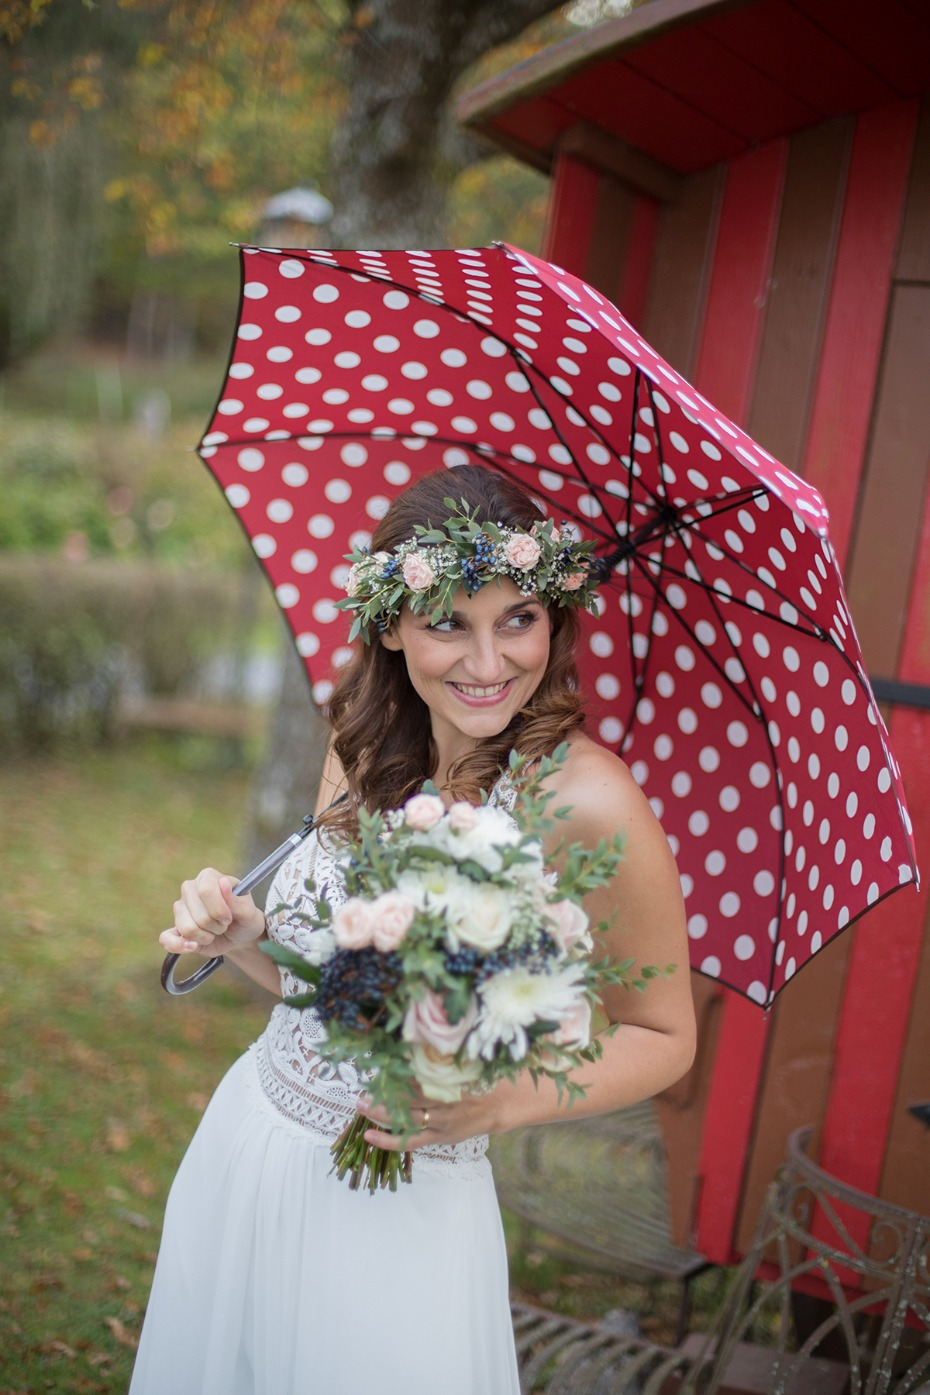 rainy day wedding photo idea